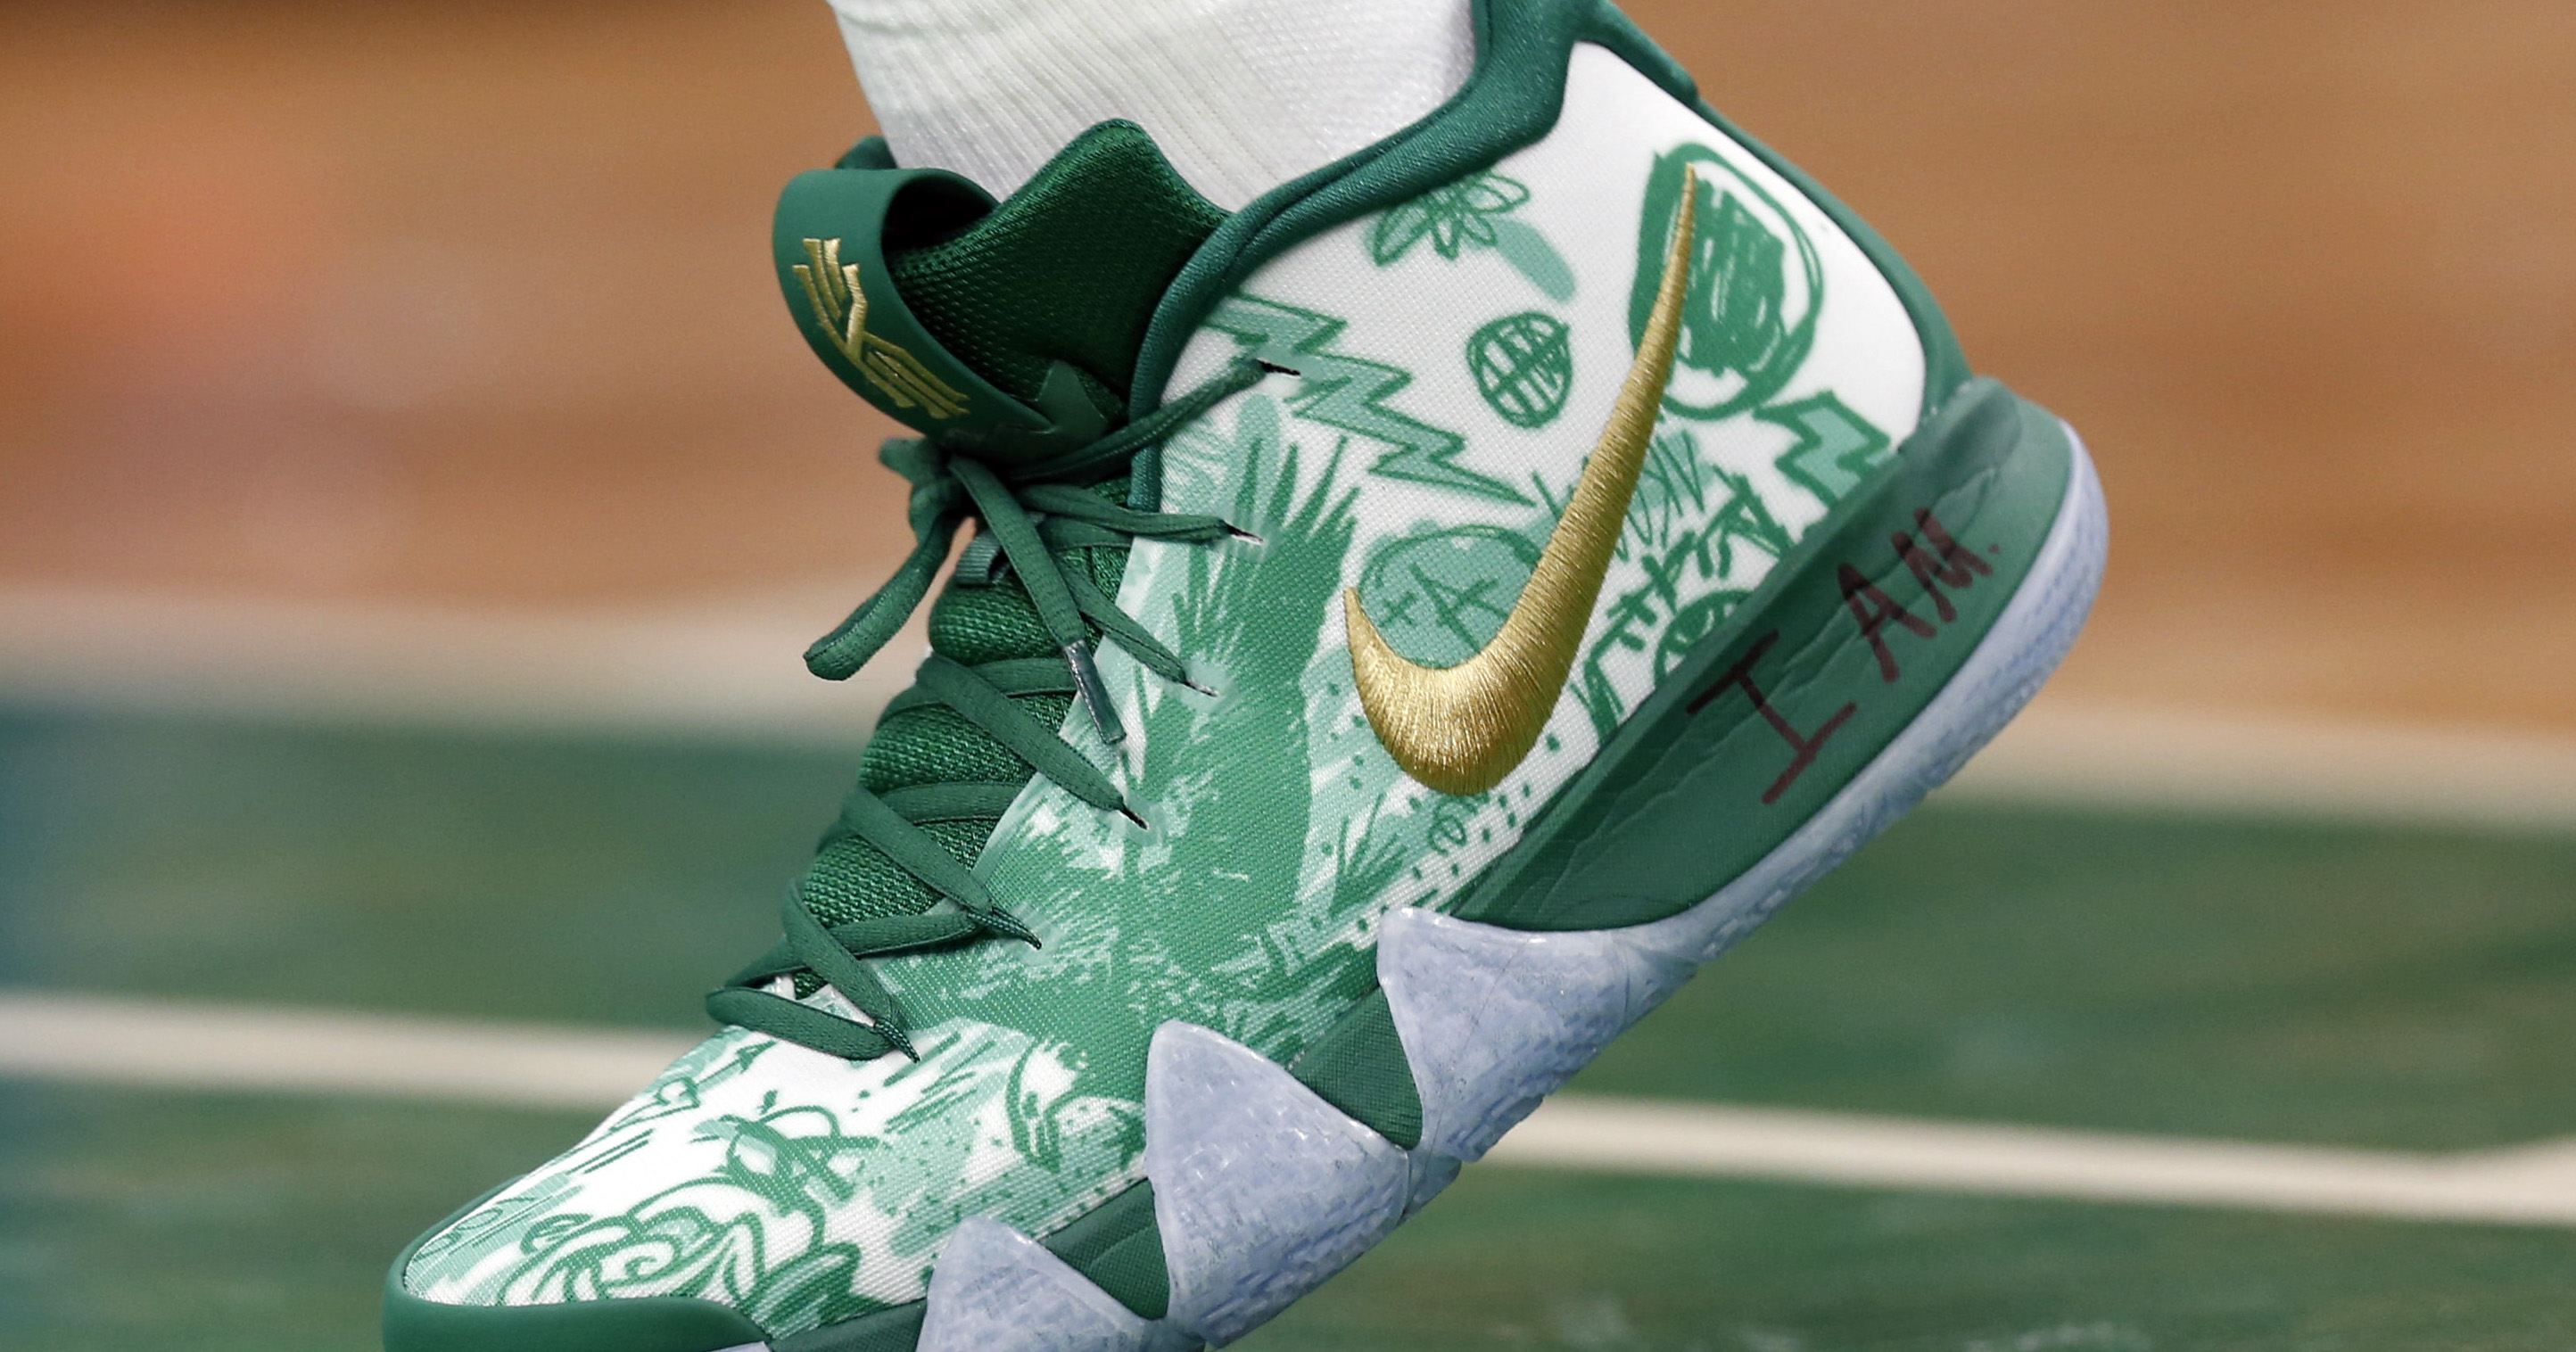 Kyrie Irving's game-by-game sneaker